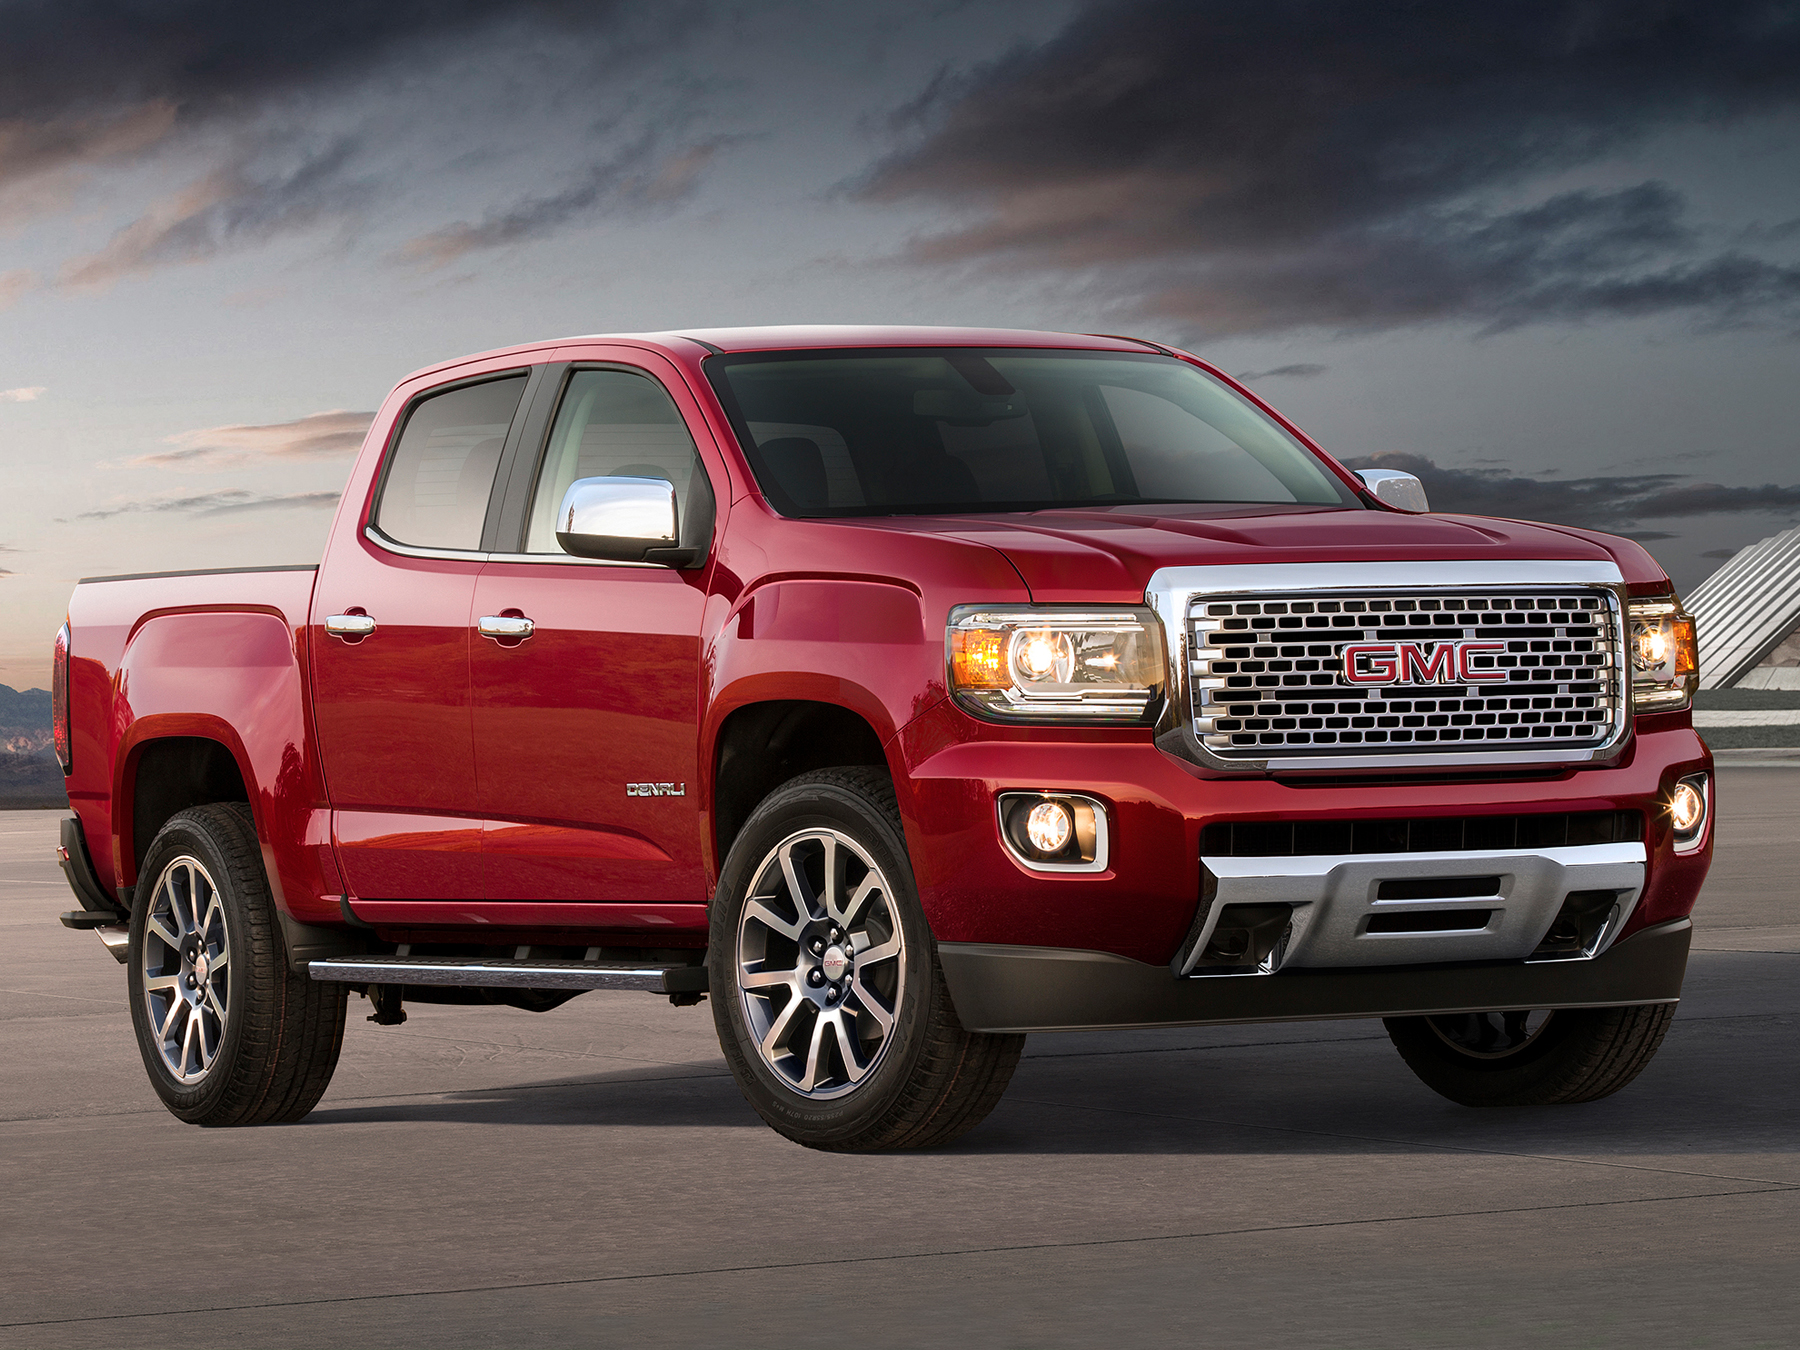 Red GMC Denali truck